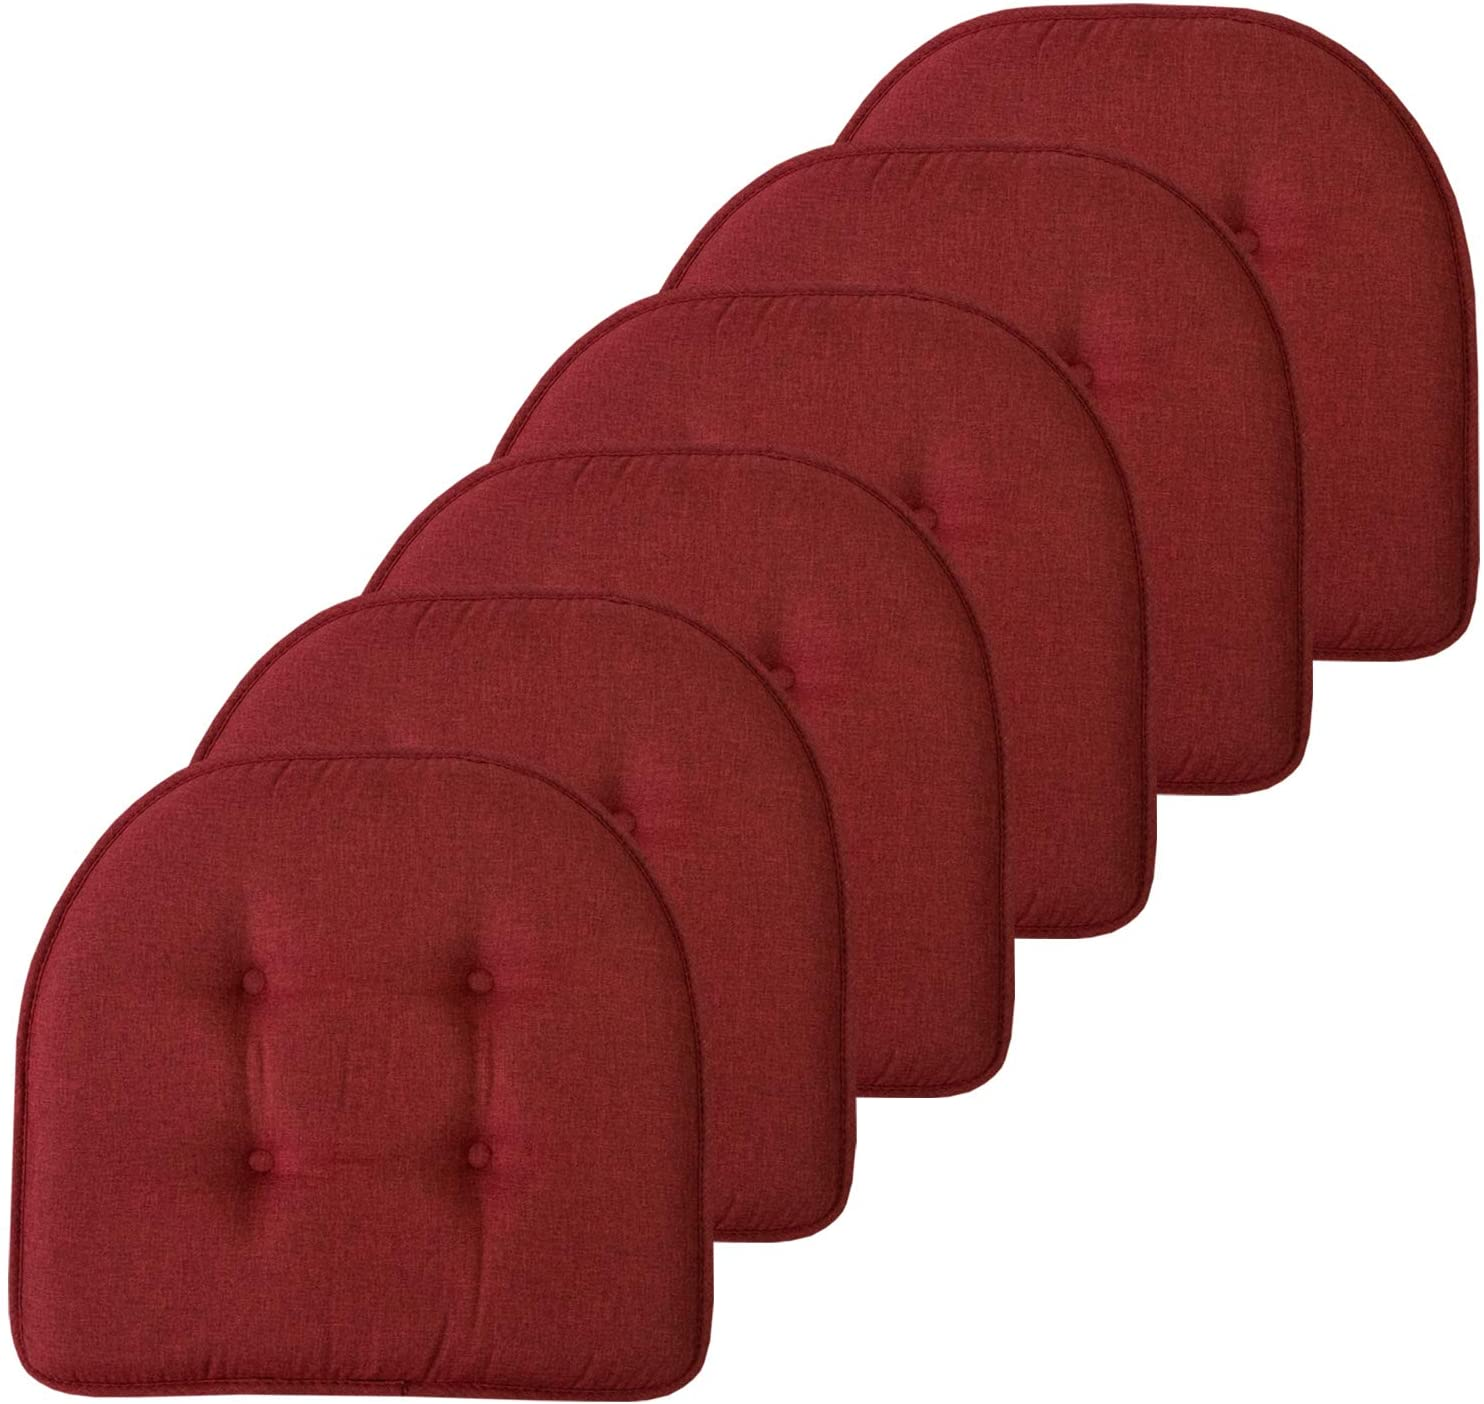 """Sweet Home Collection Chair Cushion Memory Foam Pads Tufted Slip Non Skid Rubber Back U-Shaped 17"""" x 16"""" Seat Cover, 6 Pack, Wine Burgundy"""